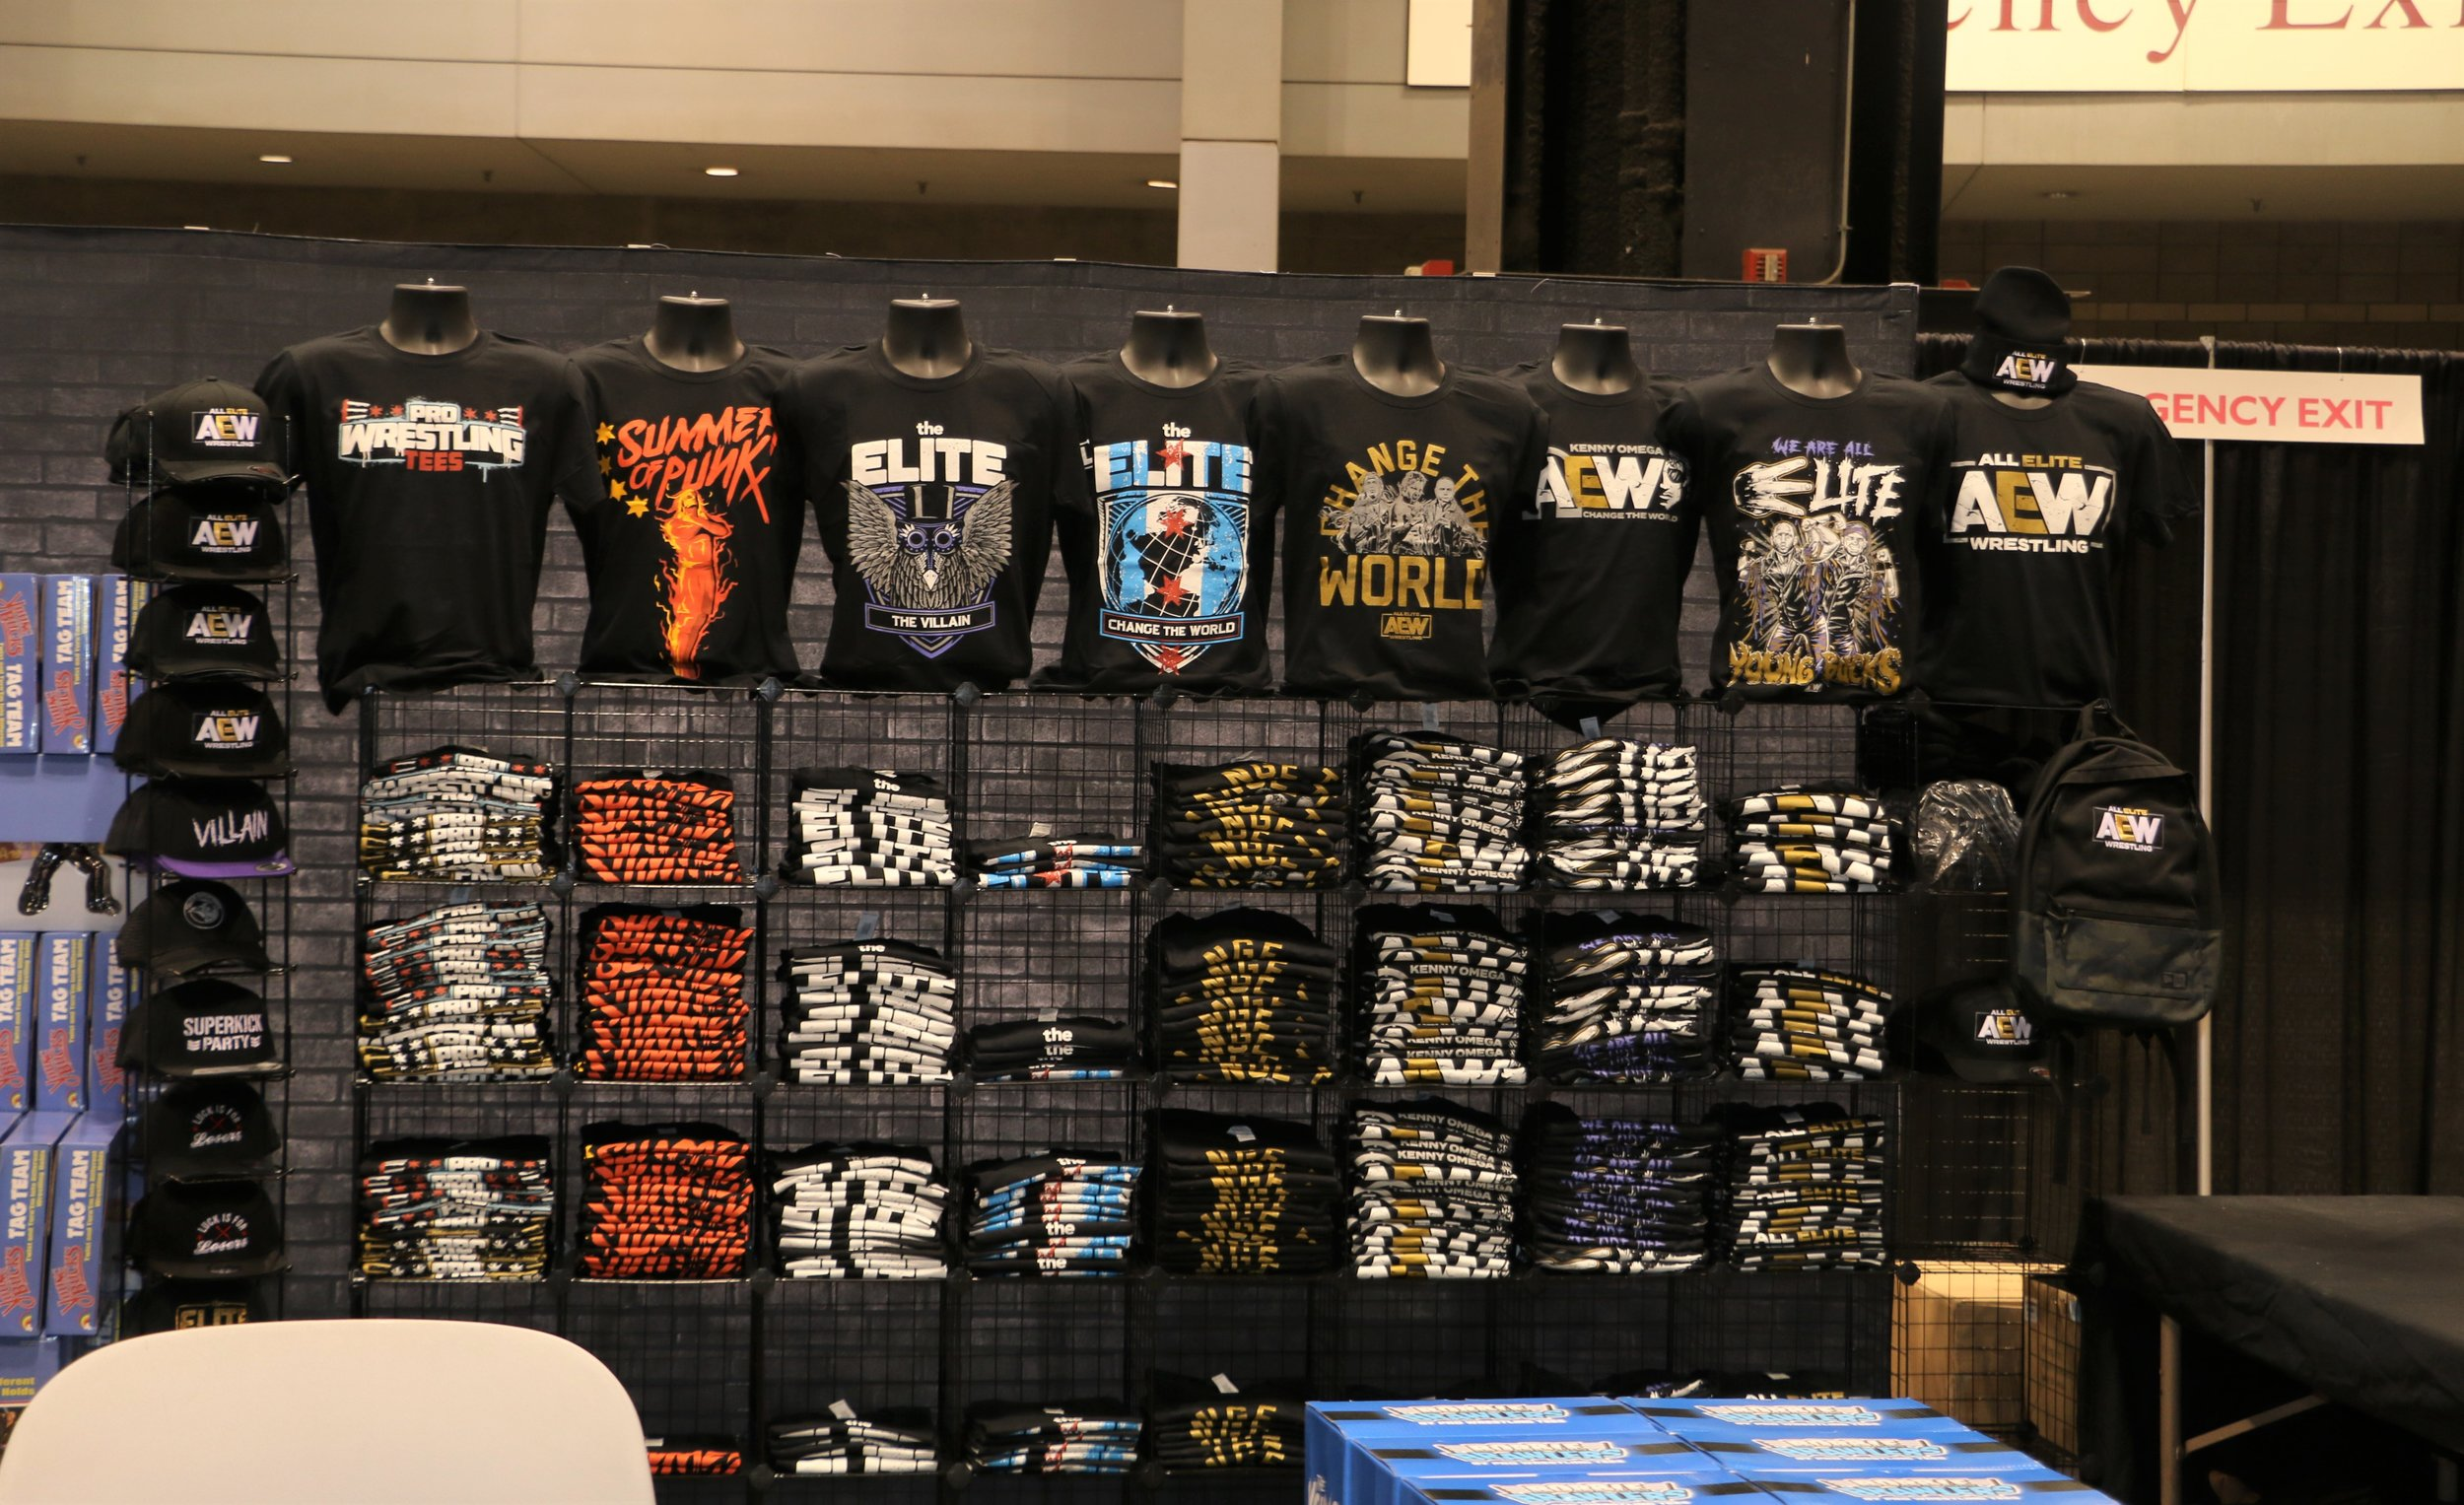 Pro Wrestling Tees booth stocked with T-shirts.